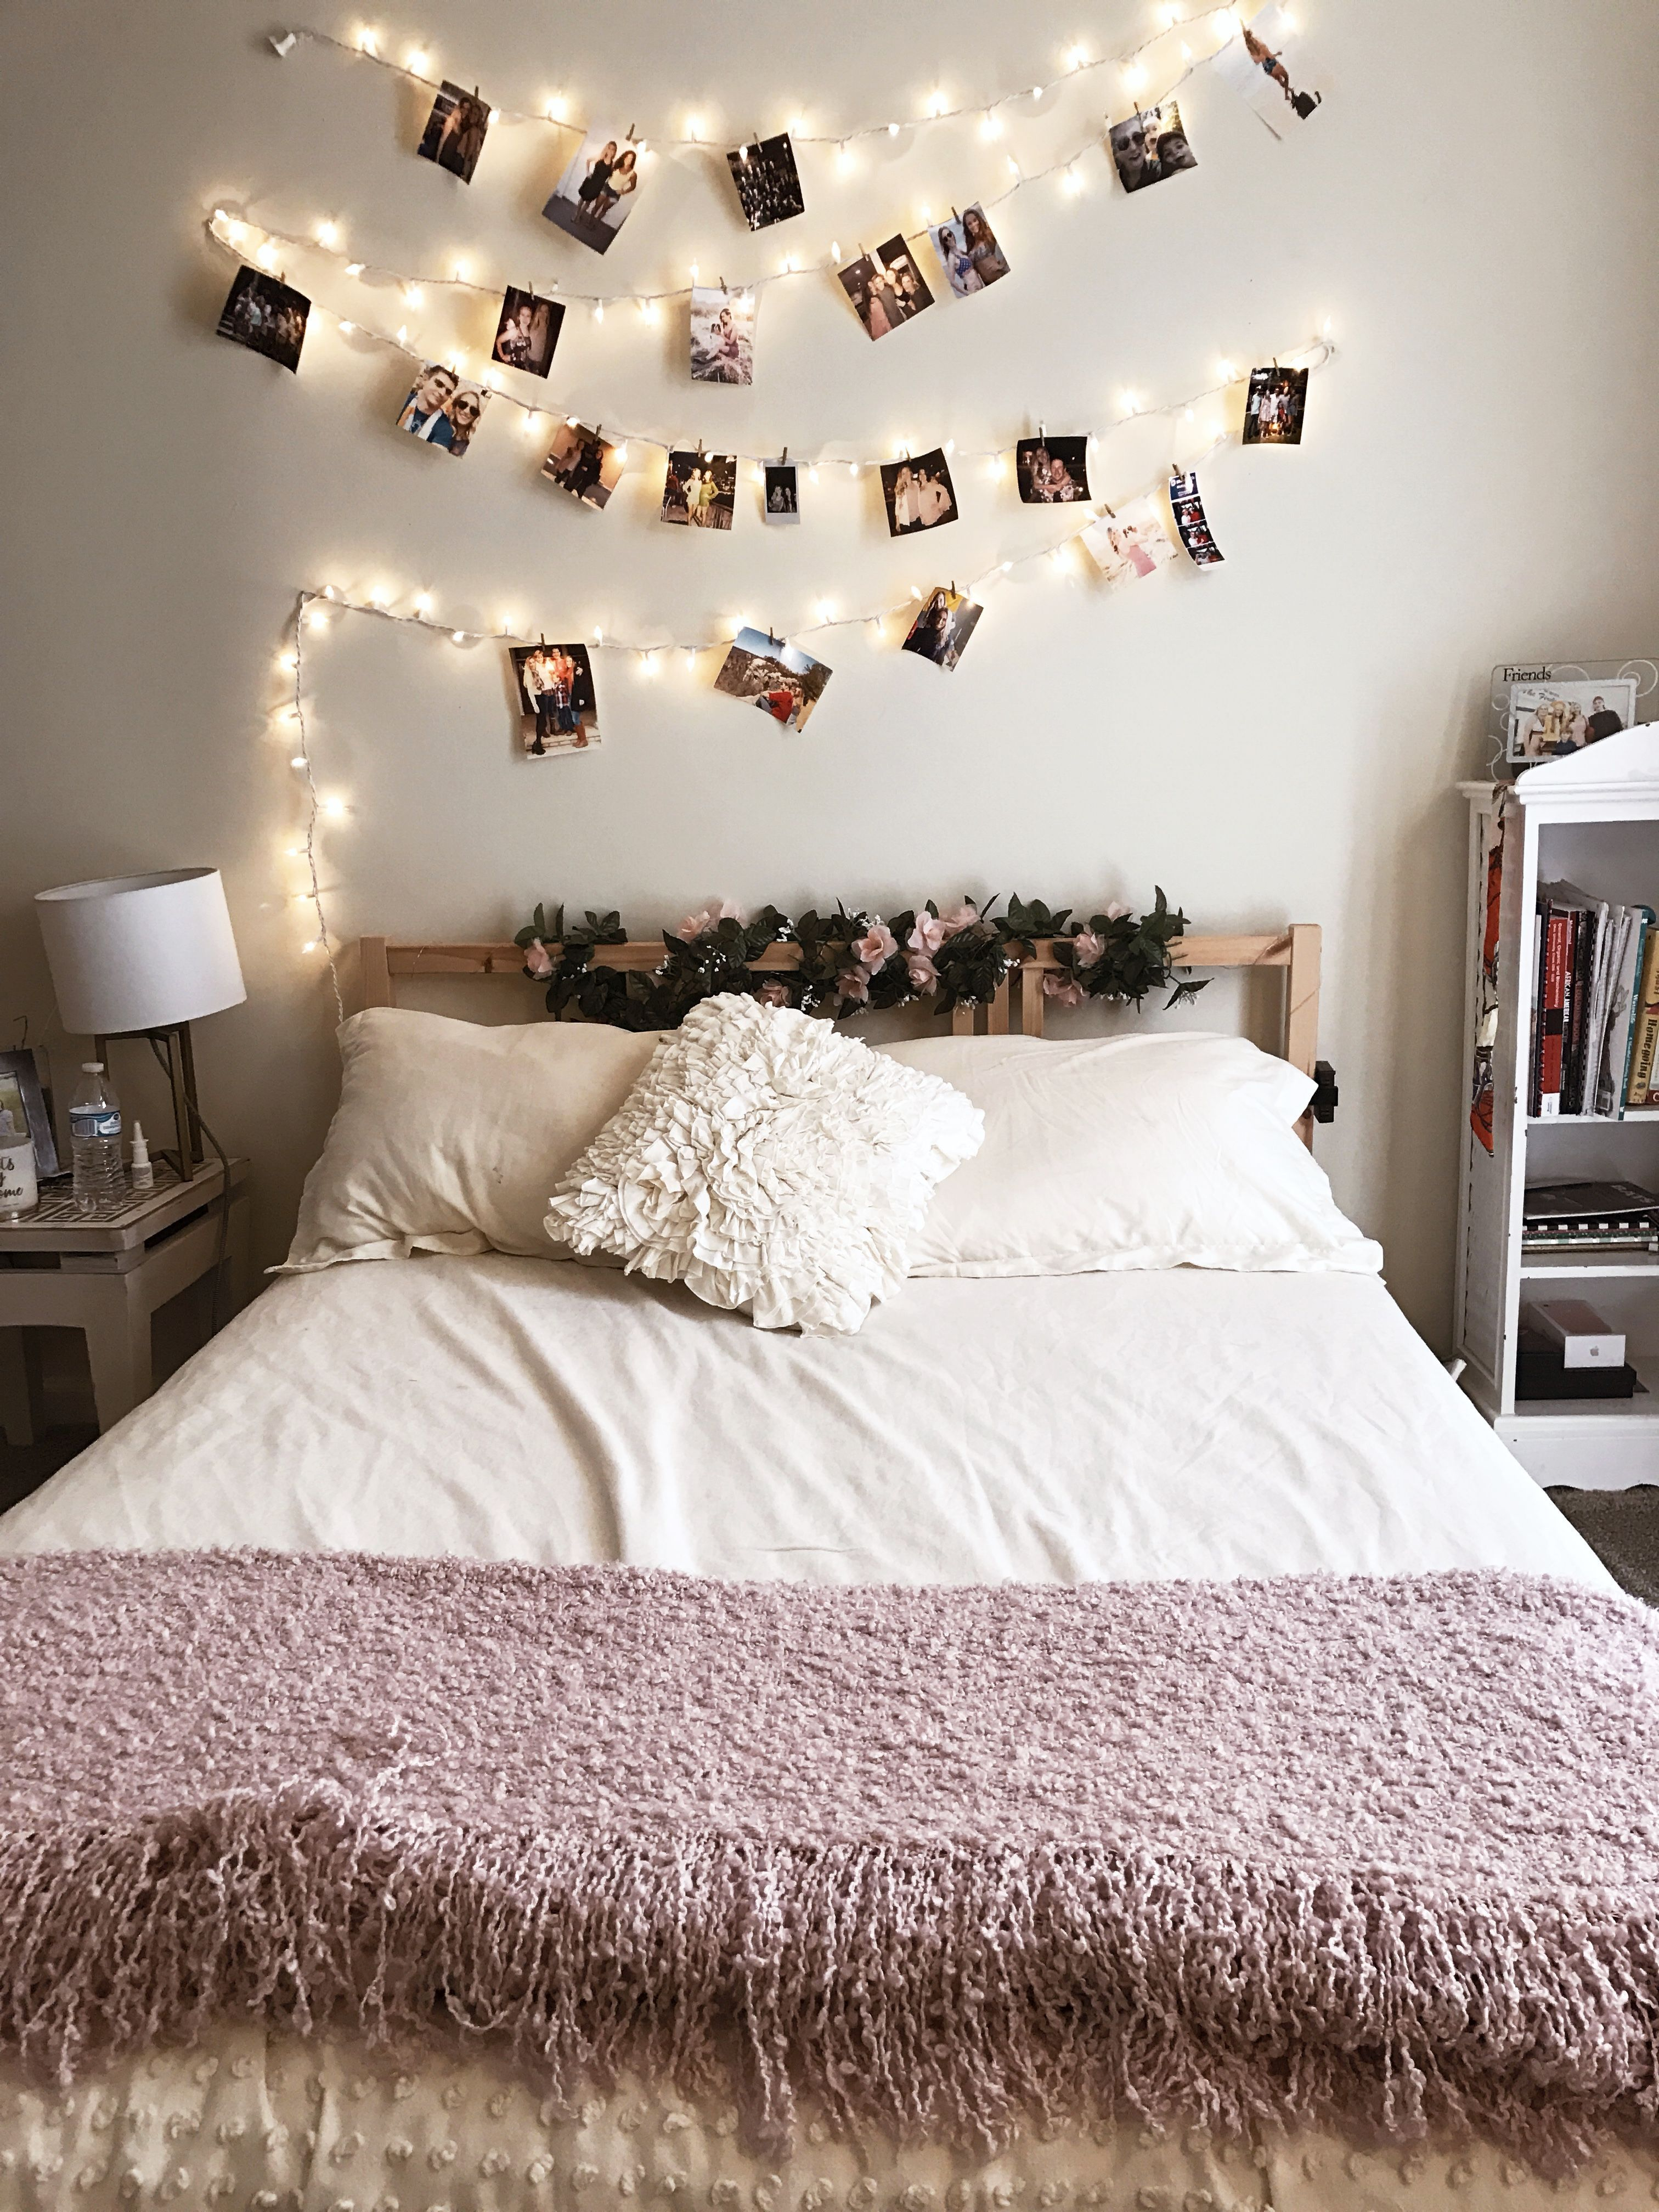 Cute Lights And Bedroom Bedding Urban